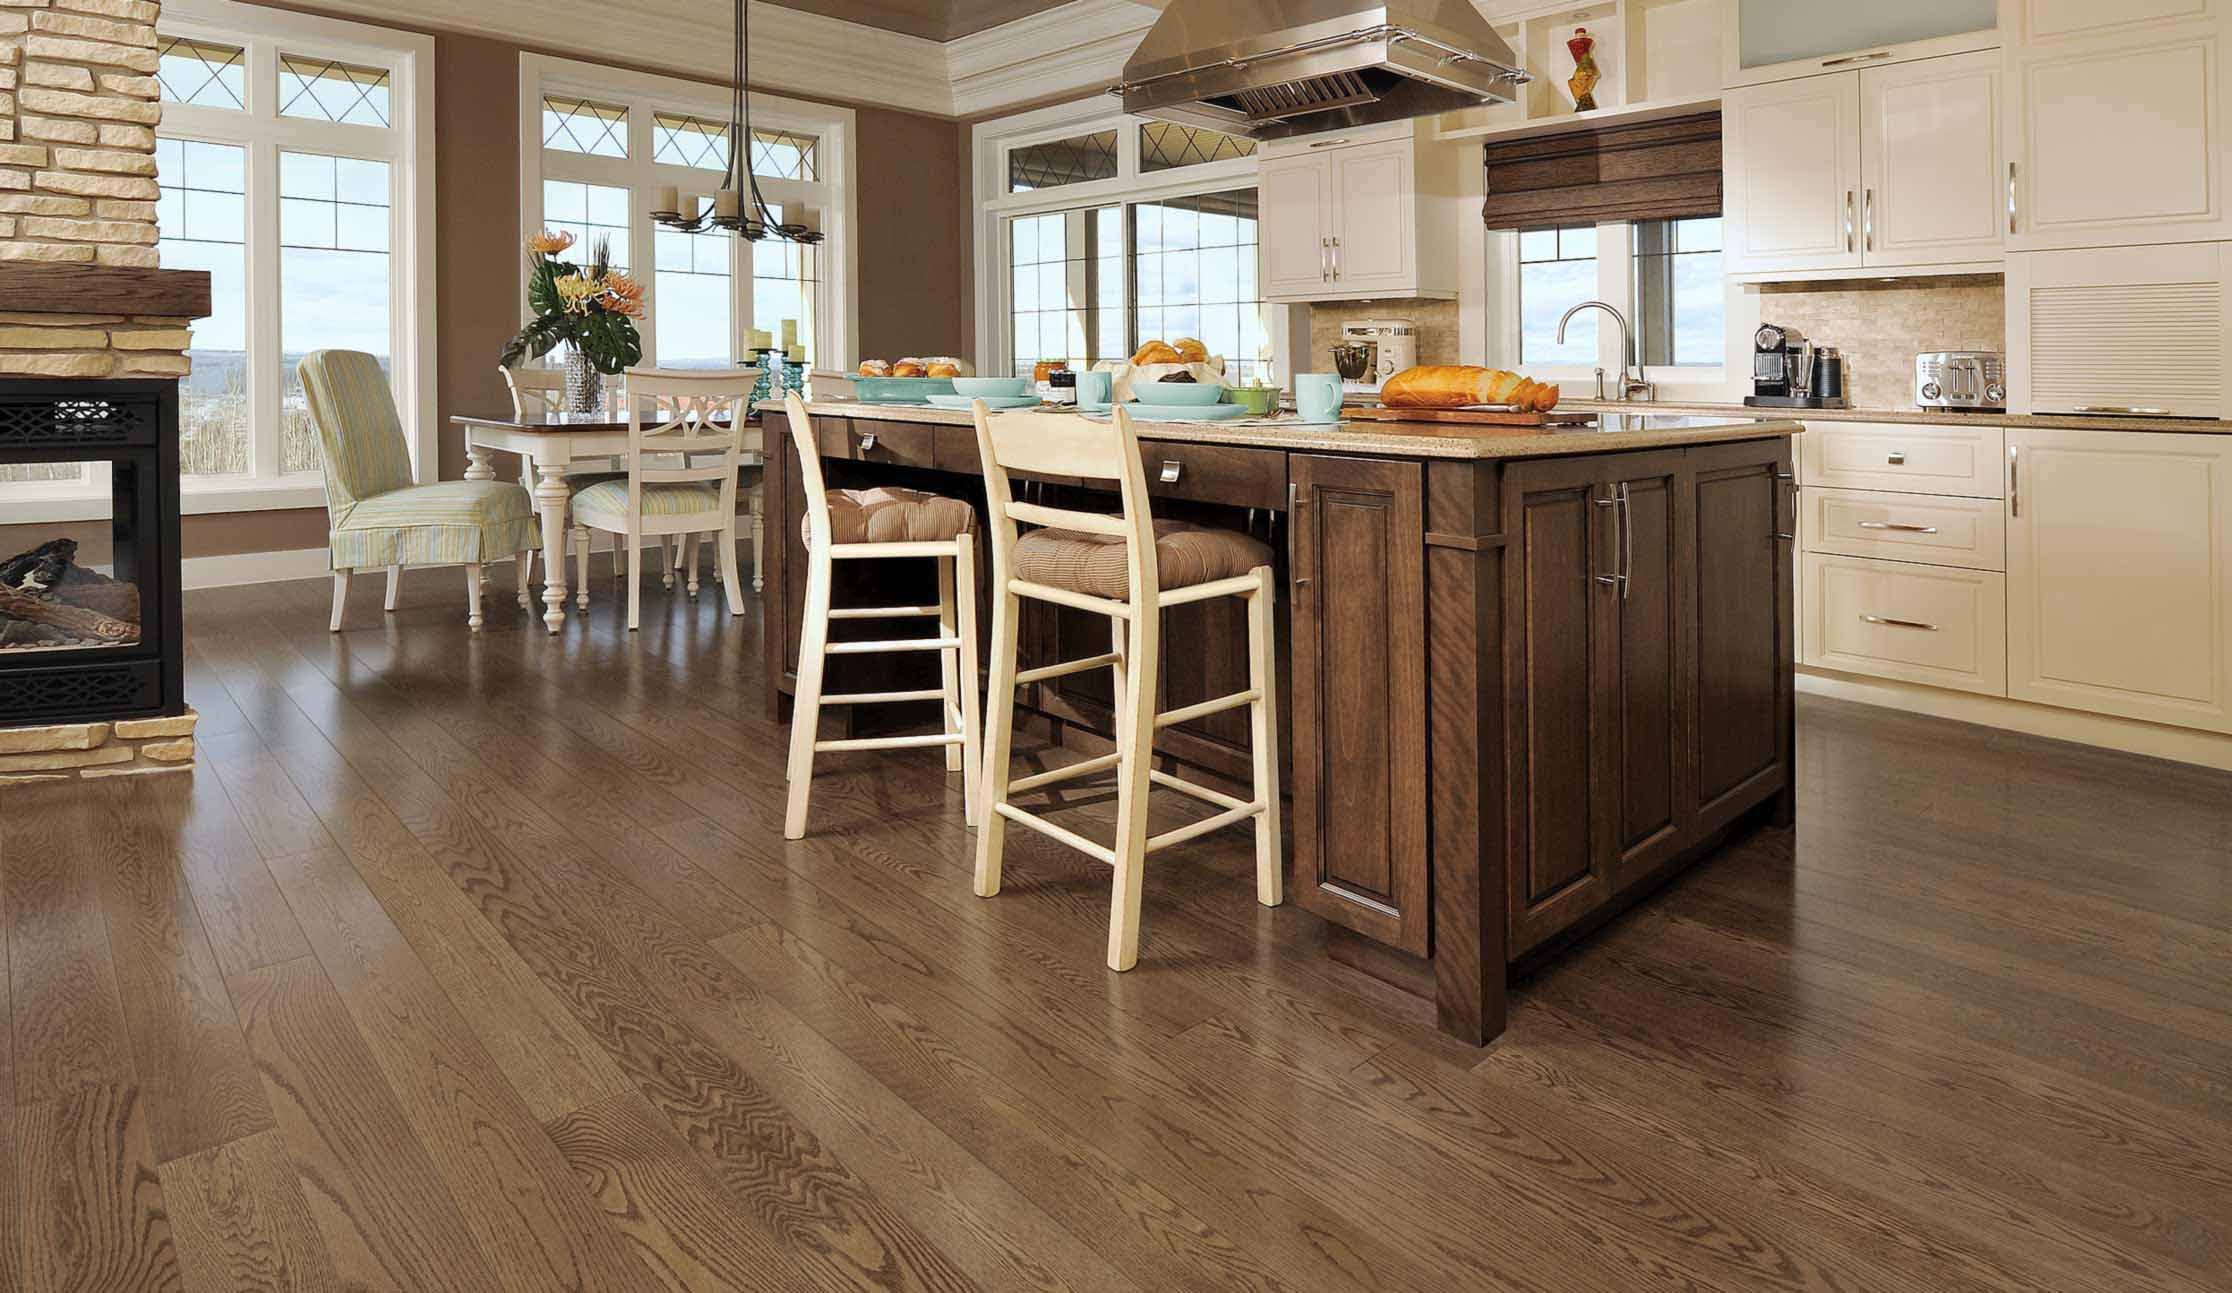 Admiration red oak savanna mirage hardwood floors for Mirage wood floors